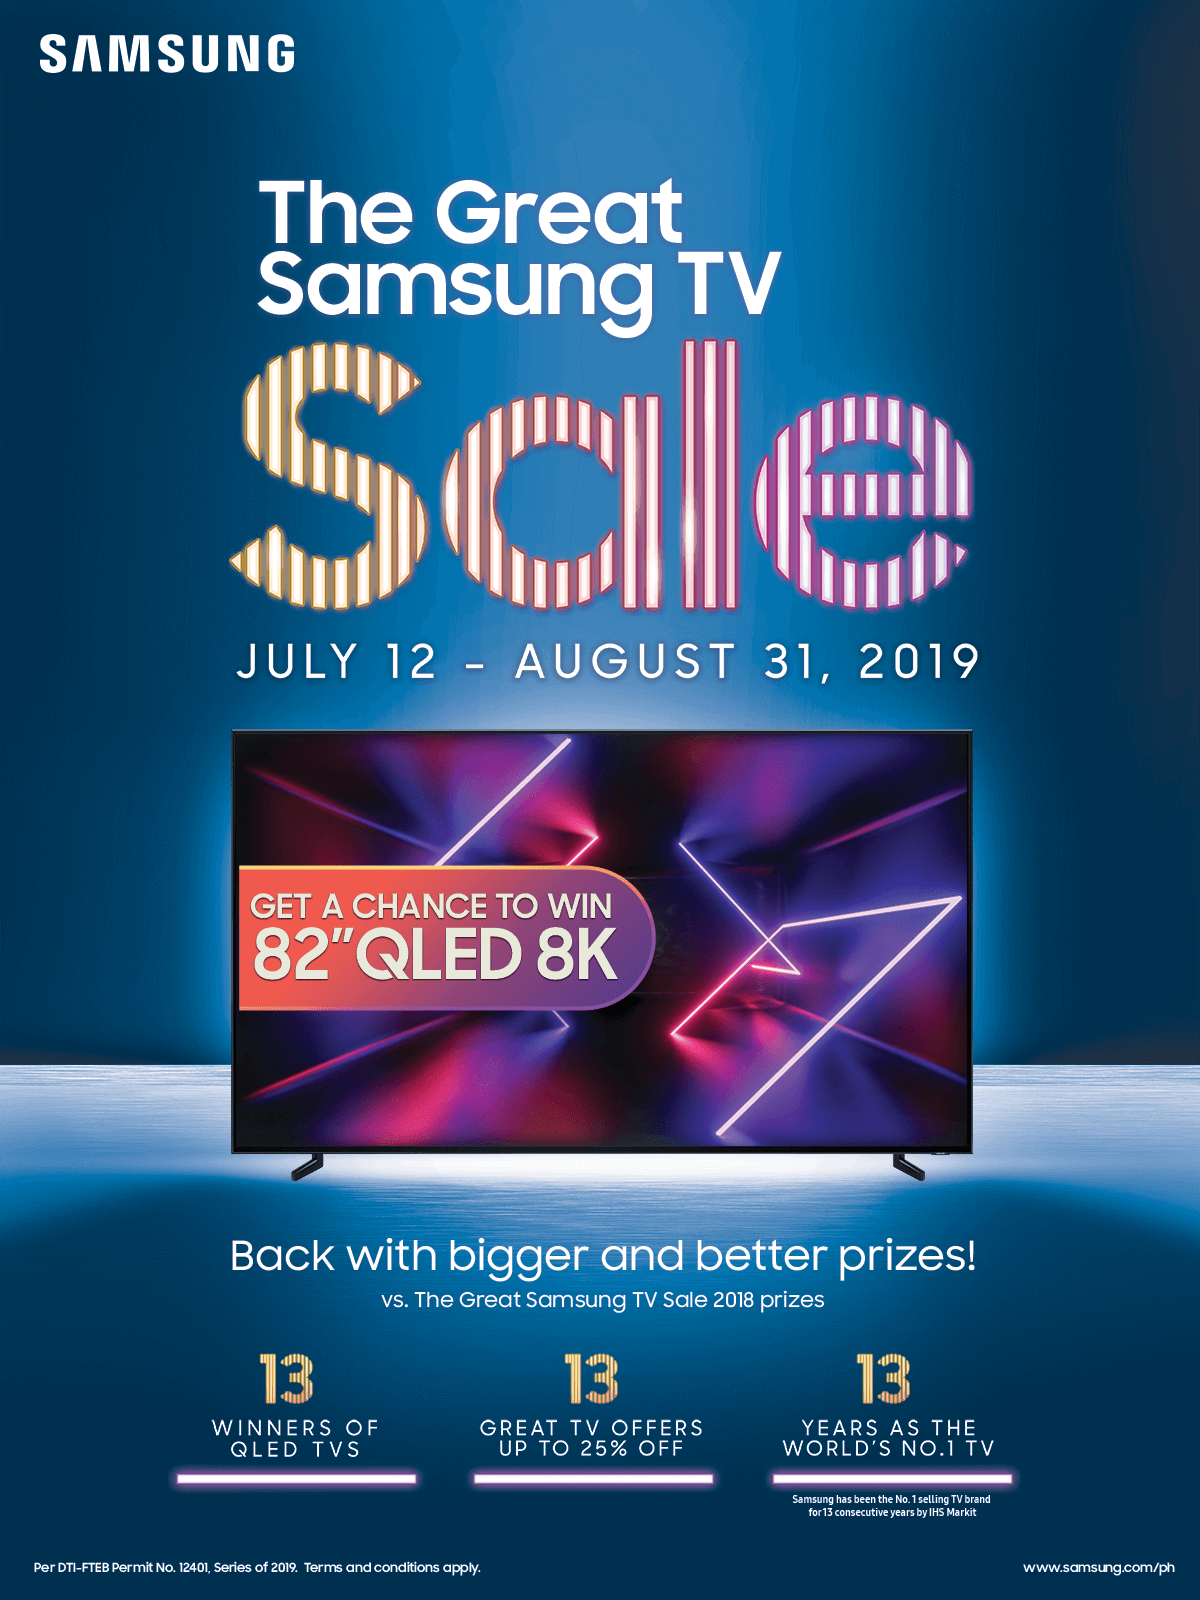 great samsung tv sale, Get a Chance to Win Amazing Prizes at the Great Samsung TV Sale!, Gadget Pilipinas, Gadget Pilipinas